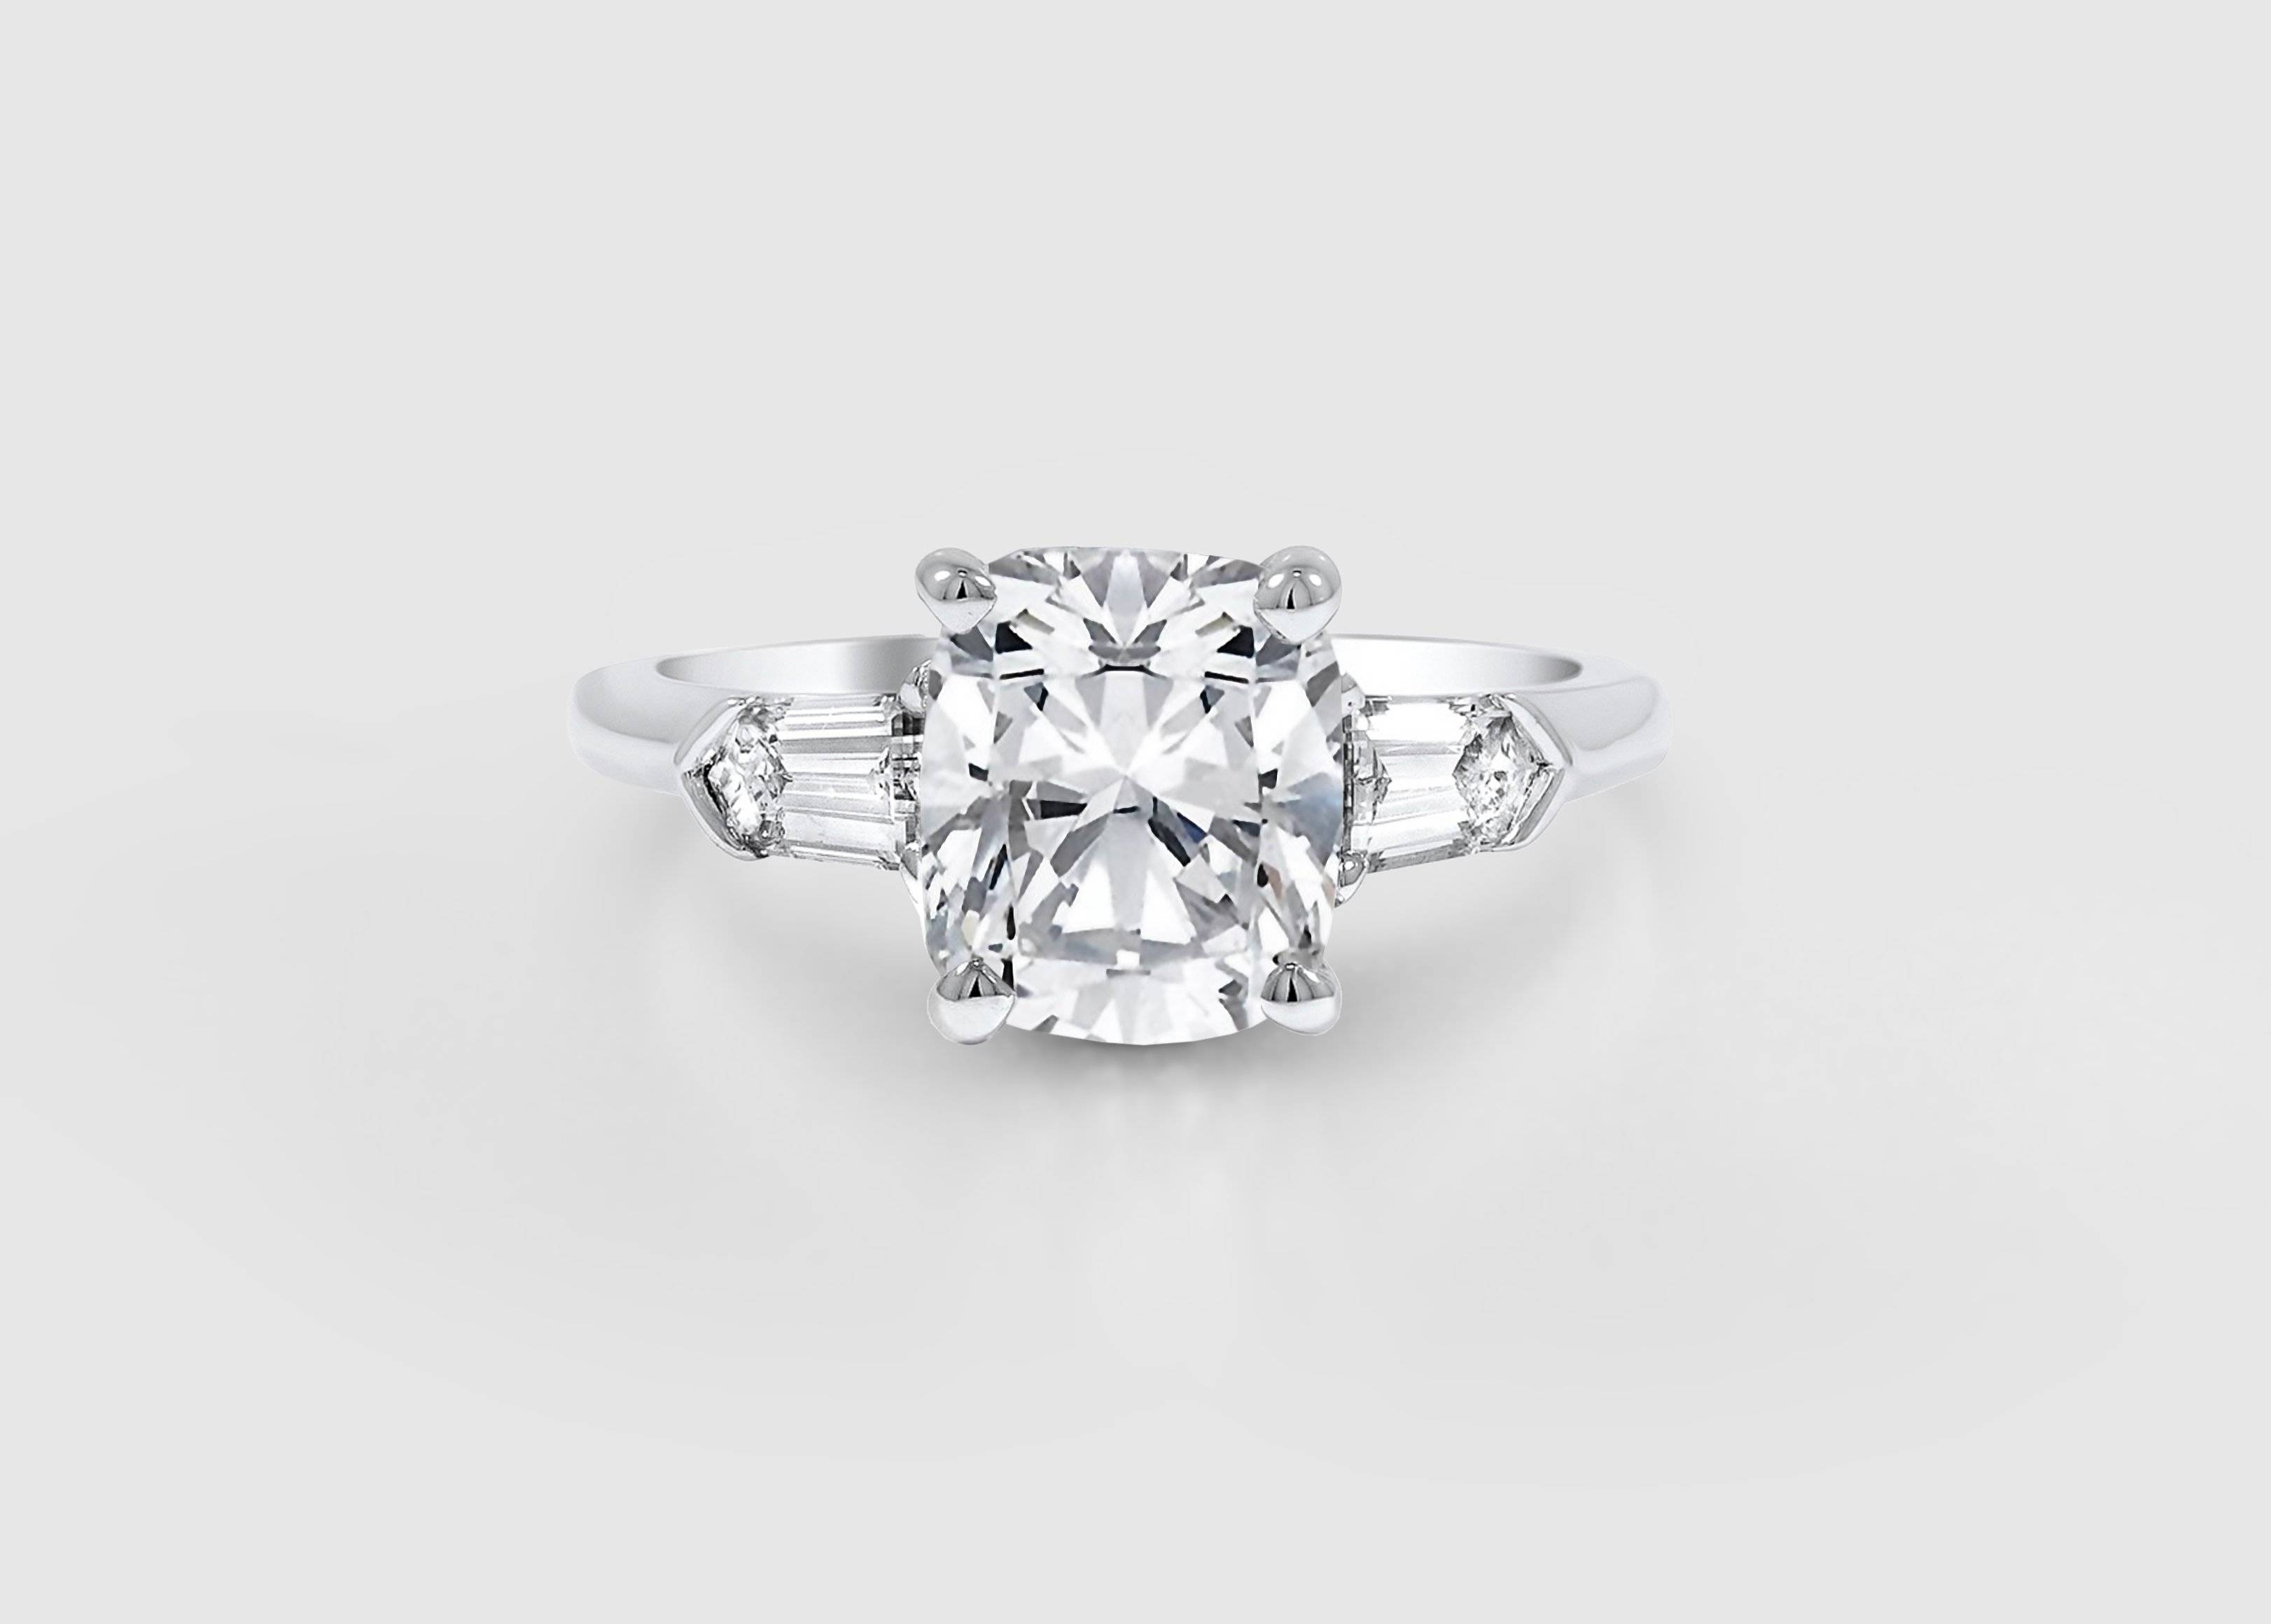 Engagement Ring Trends Of The Past, Present, And Future Pertaining To Historical Engagement Rings (Gallery 8 of 15)